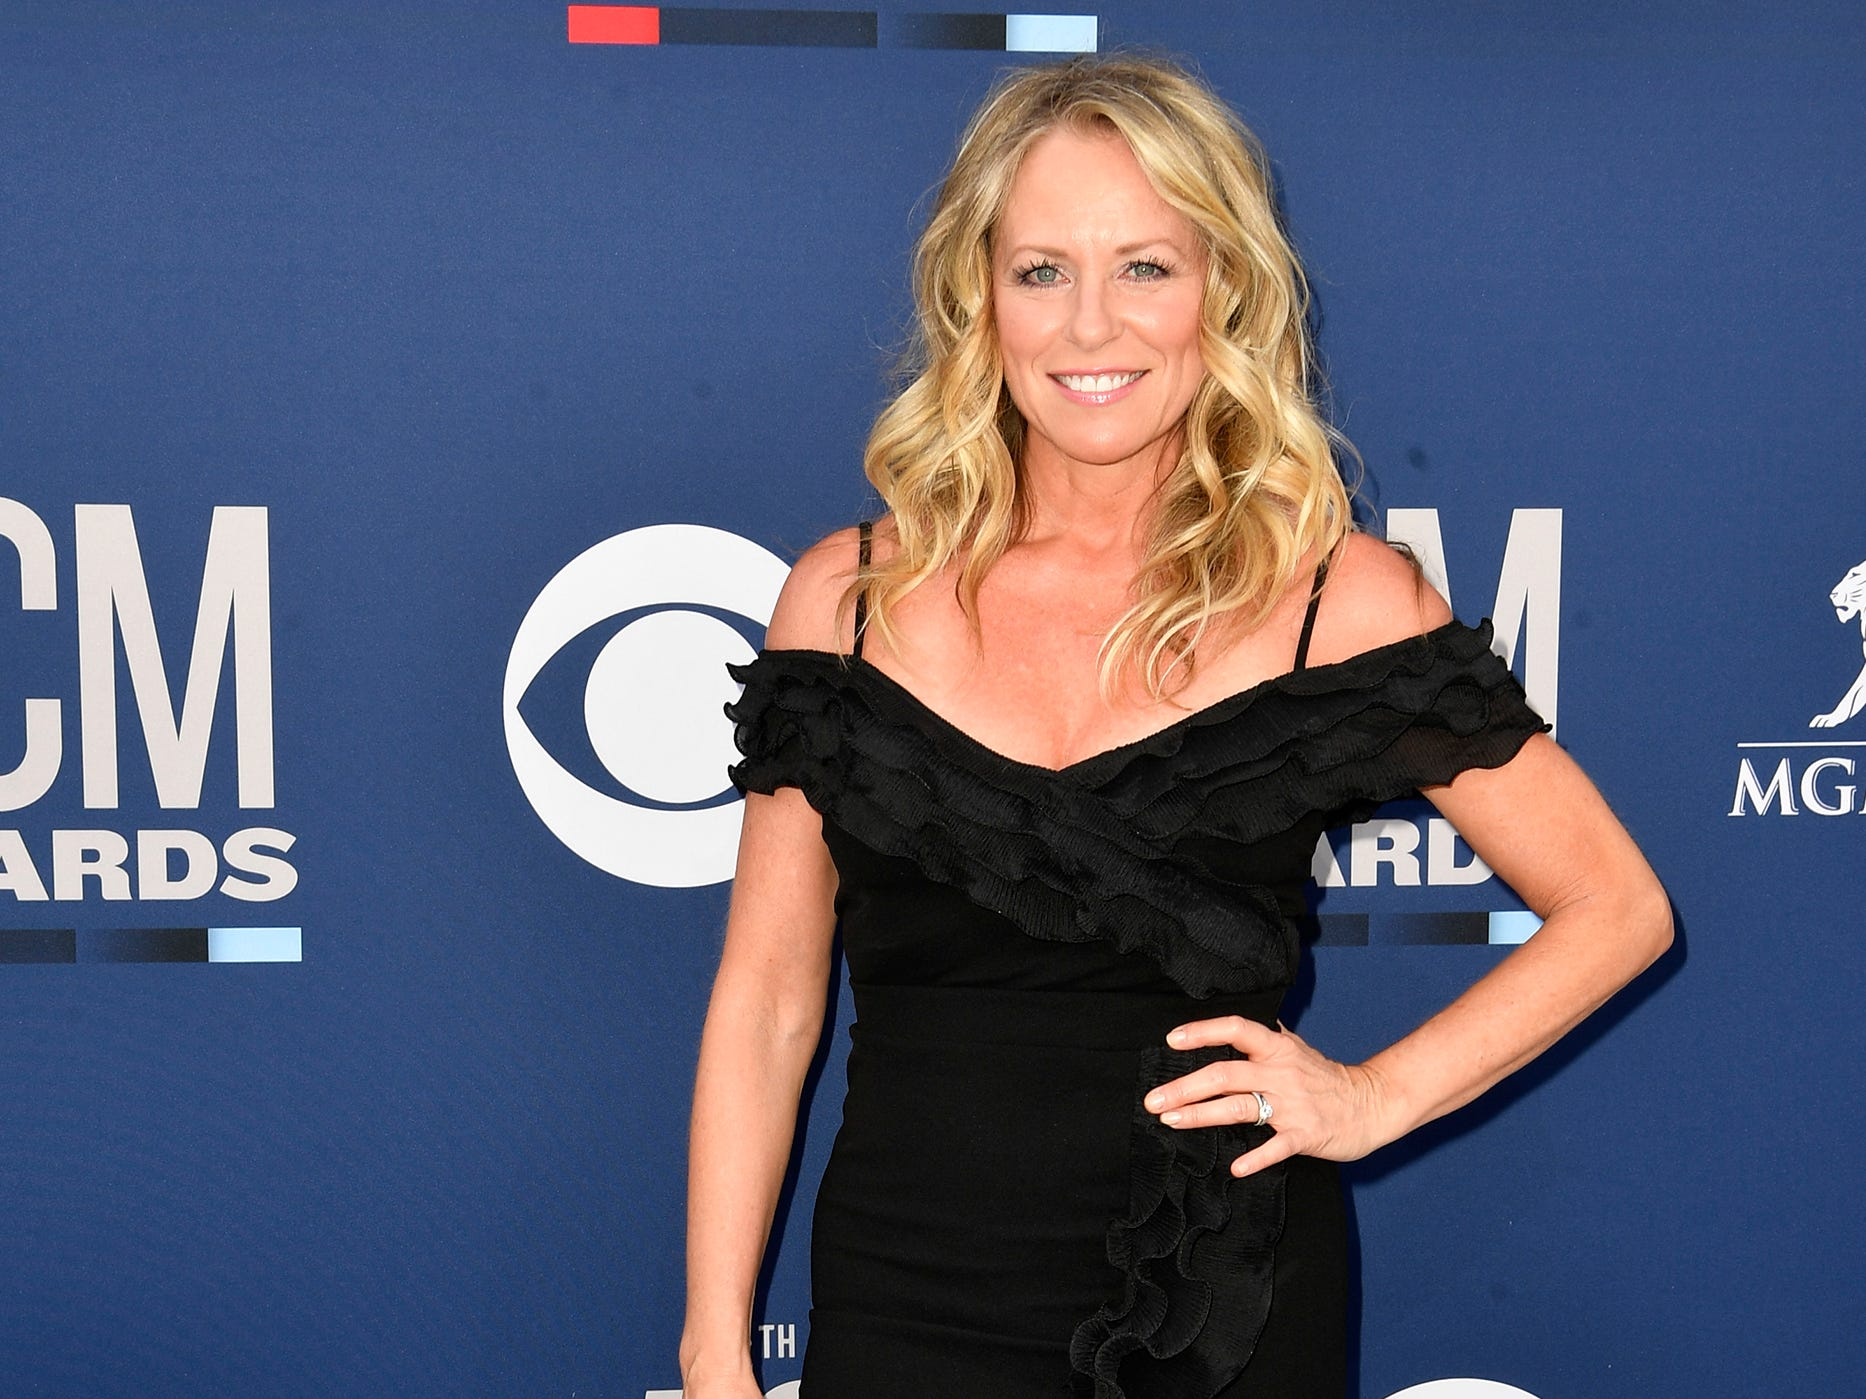 Deana Carter walks the red carpet at the 54TH Academy of Country Music Awards Sunday, April 7, 2019, in Las Vegas, Nev.